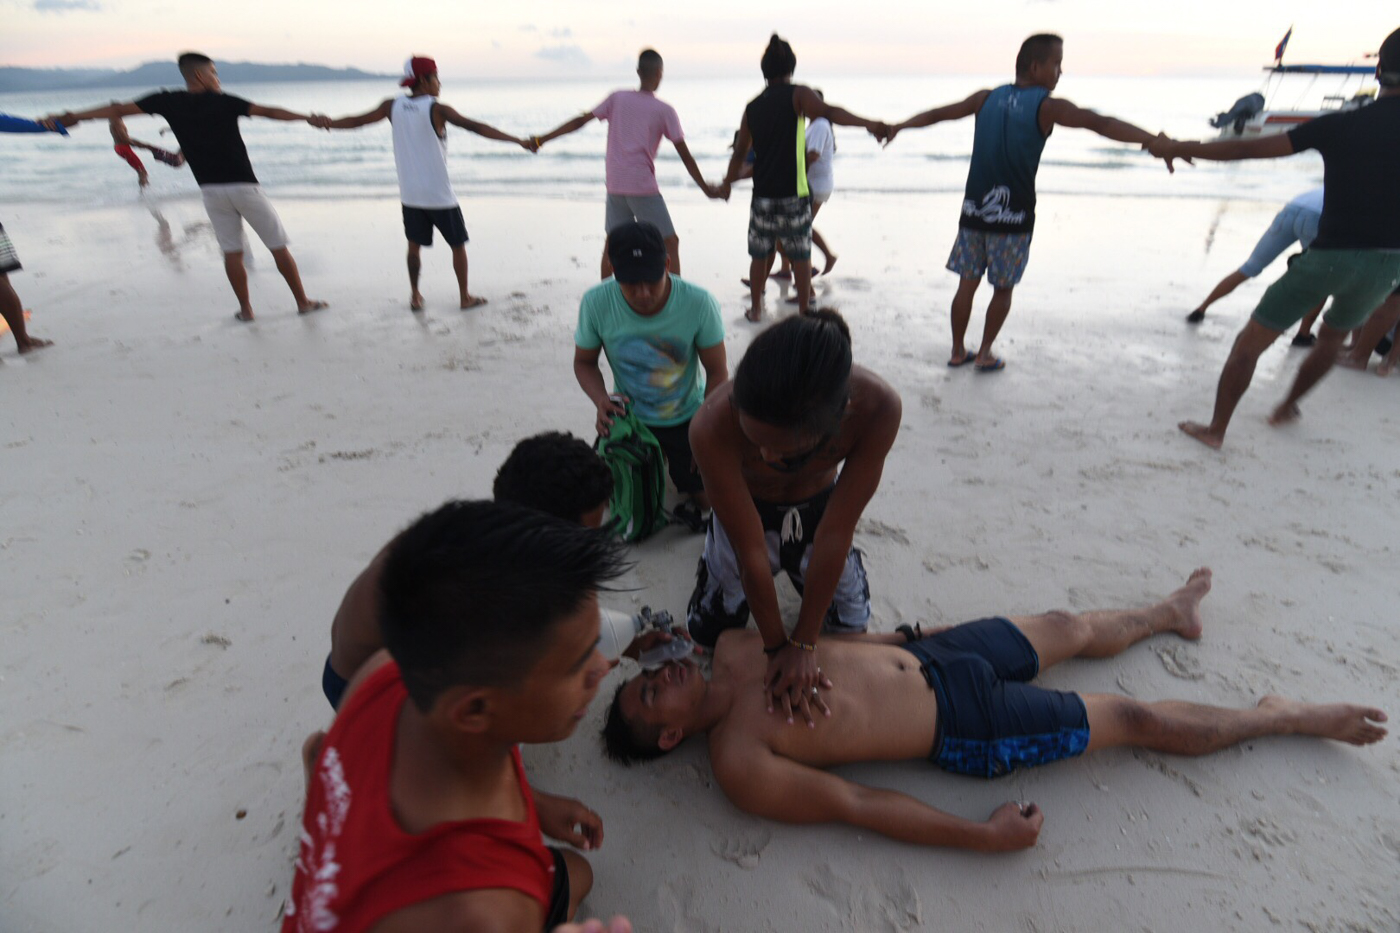 DEAD OR ALIVE? Different emergency scenarios are simulated in Boracay. Photo by Alecs Ongcal/Rappler